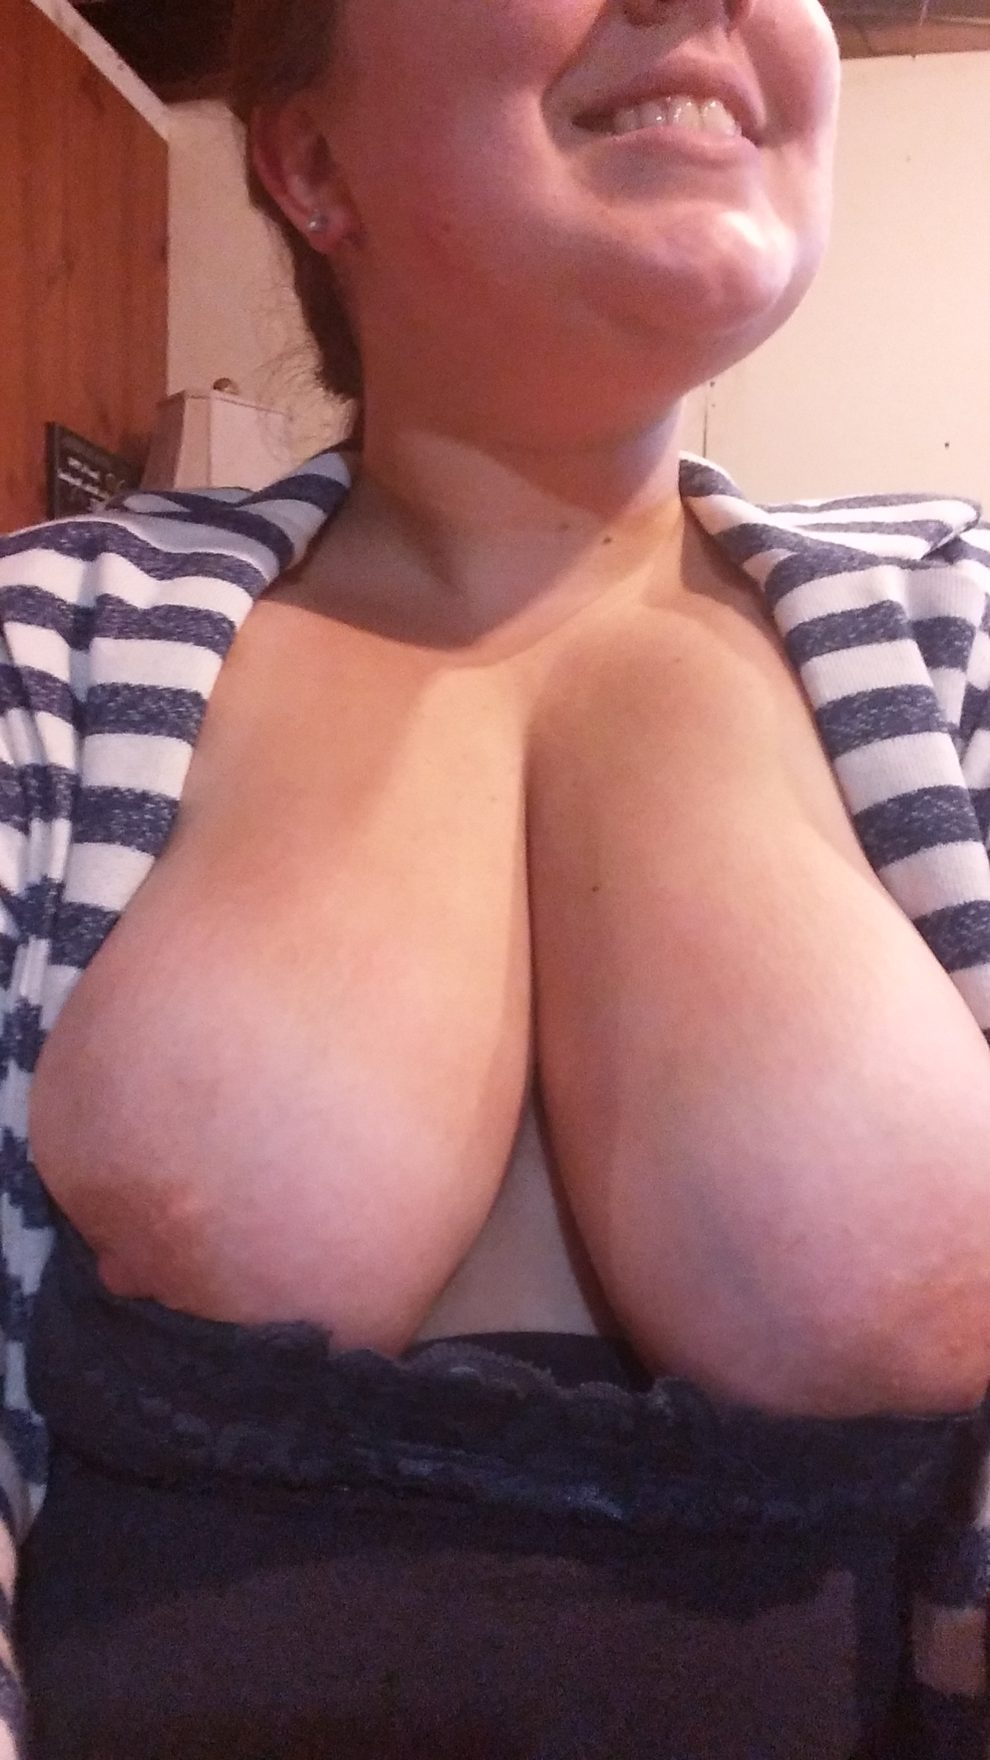 Nip-Slip Friday! [F/22/BBW]